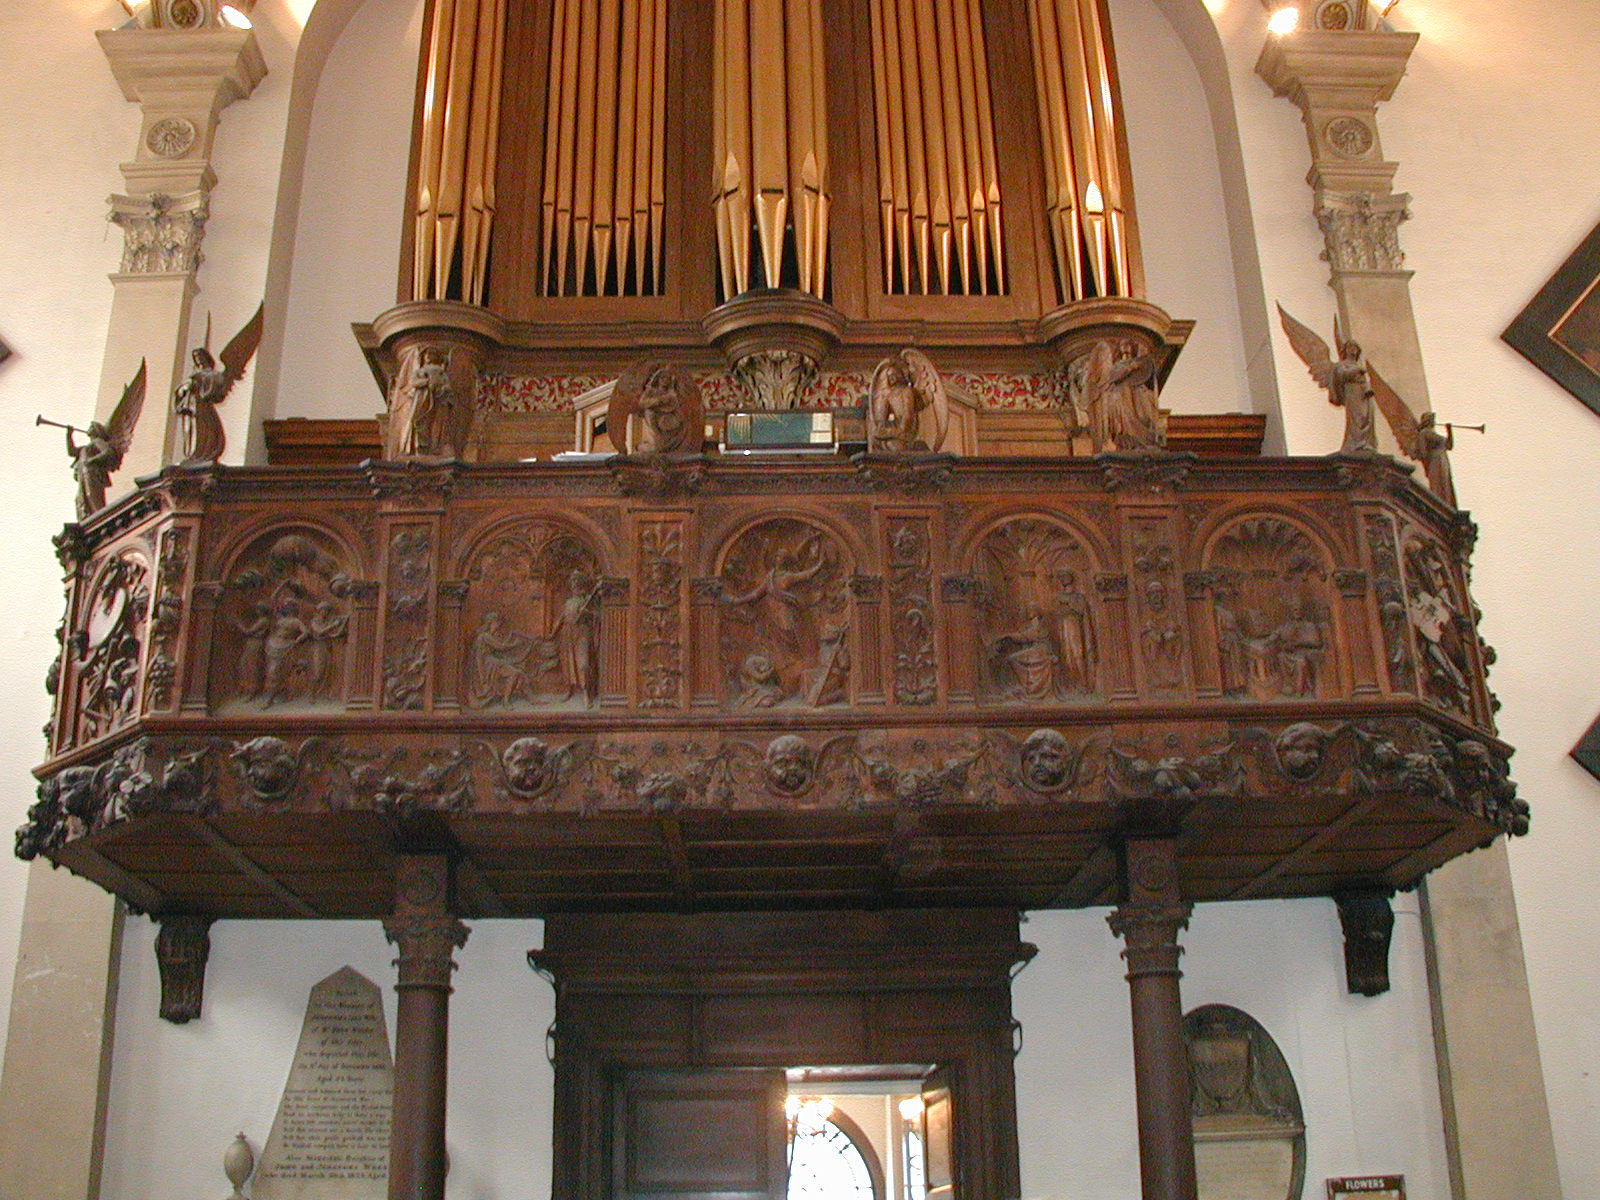 Organ loft - looking up